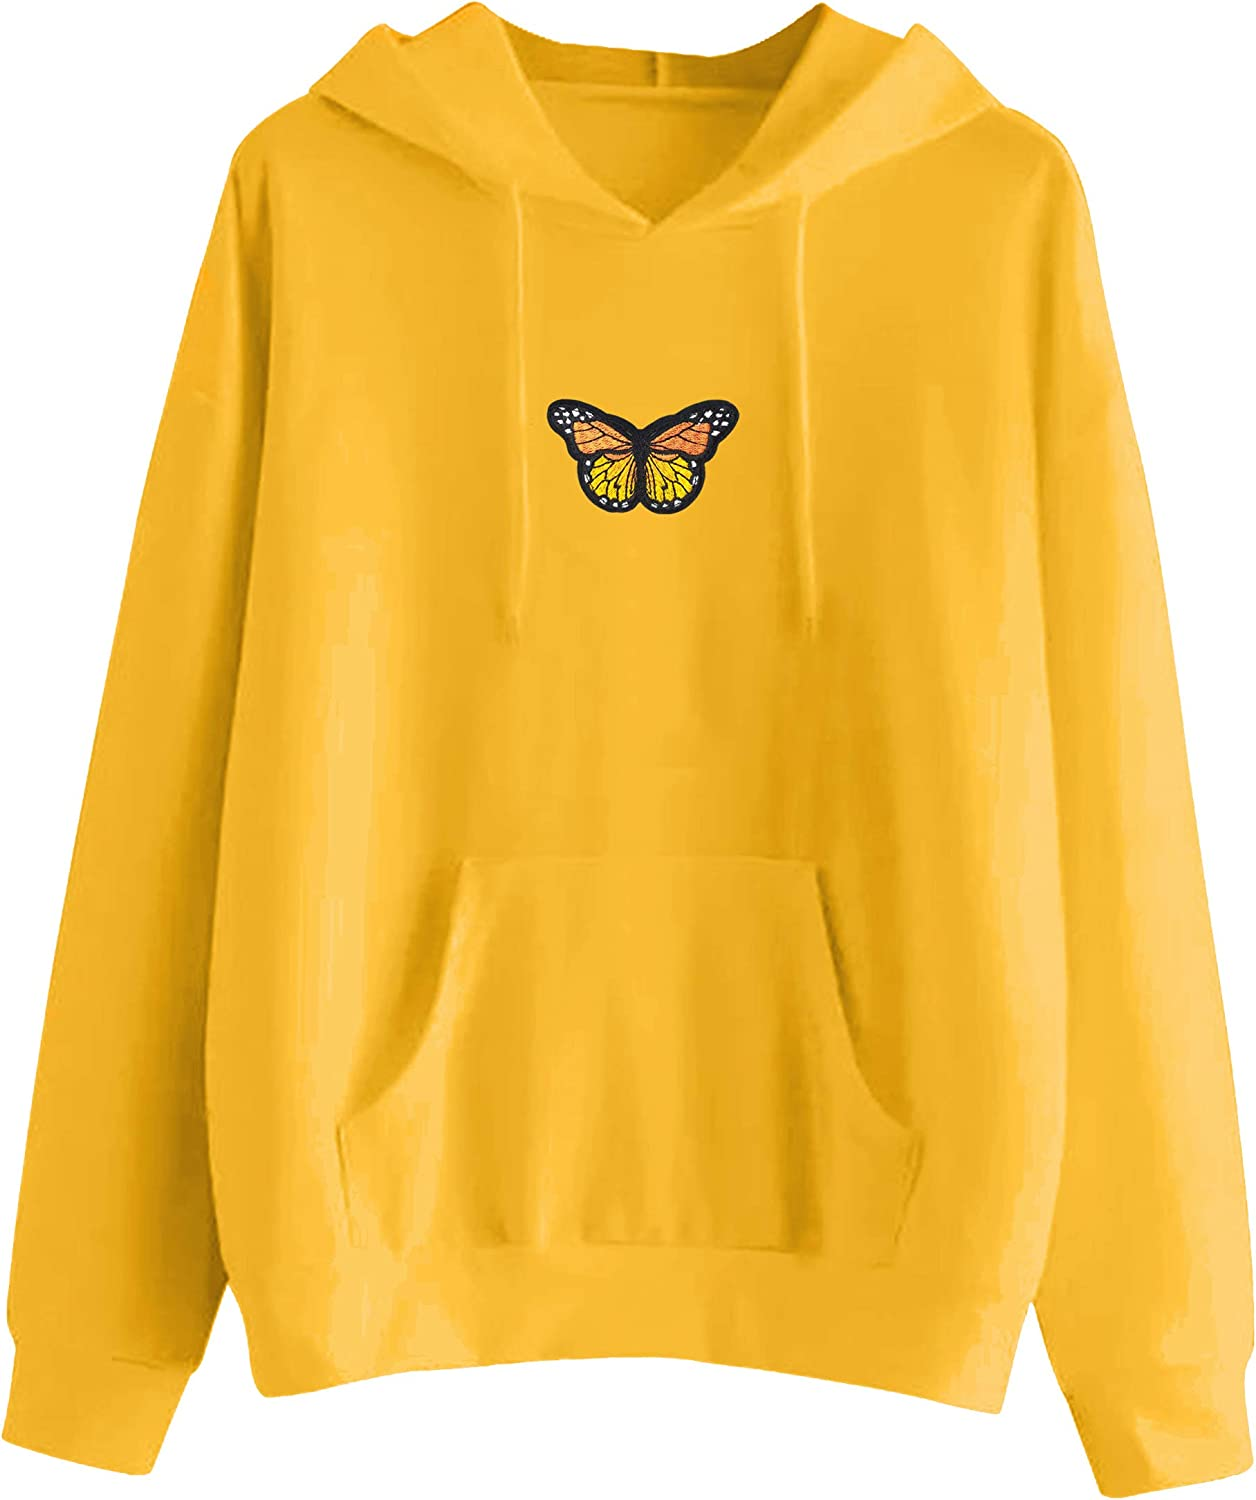 MISSACTIVER Women's Butterfly Patchwork Pocket Casual Pullover Hooded Sweatshirt